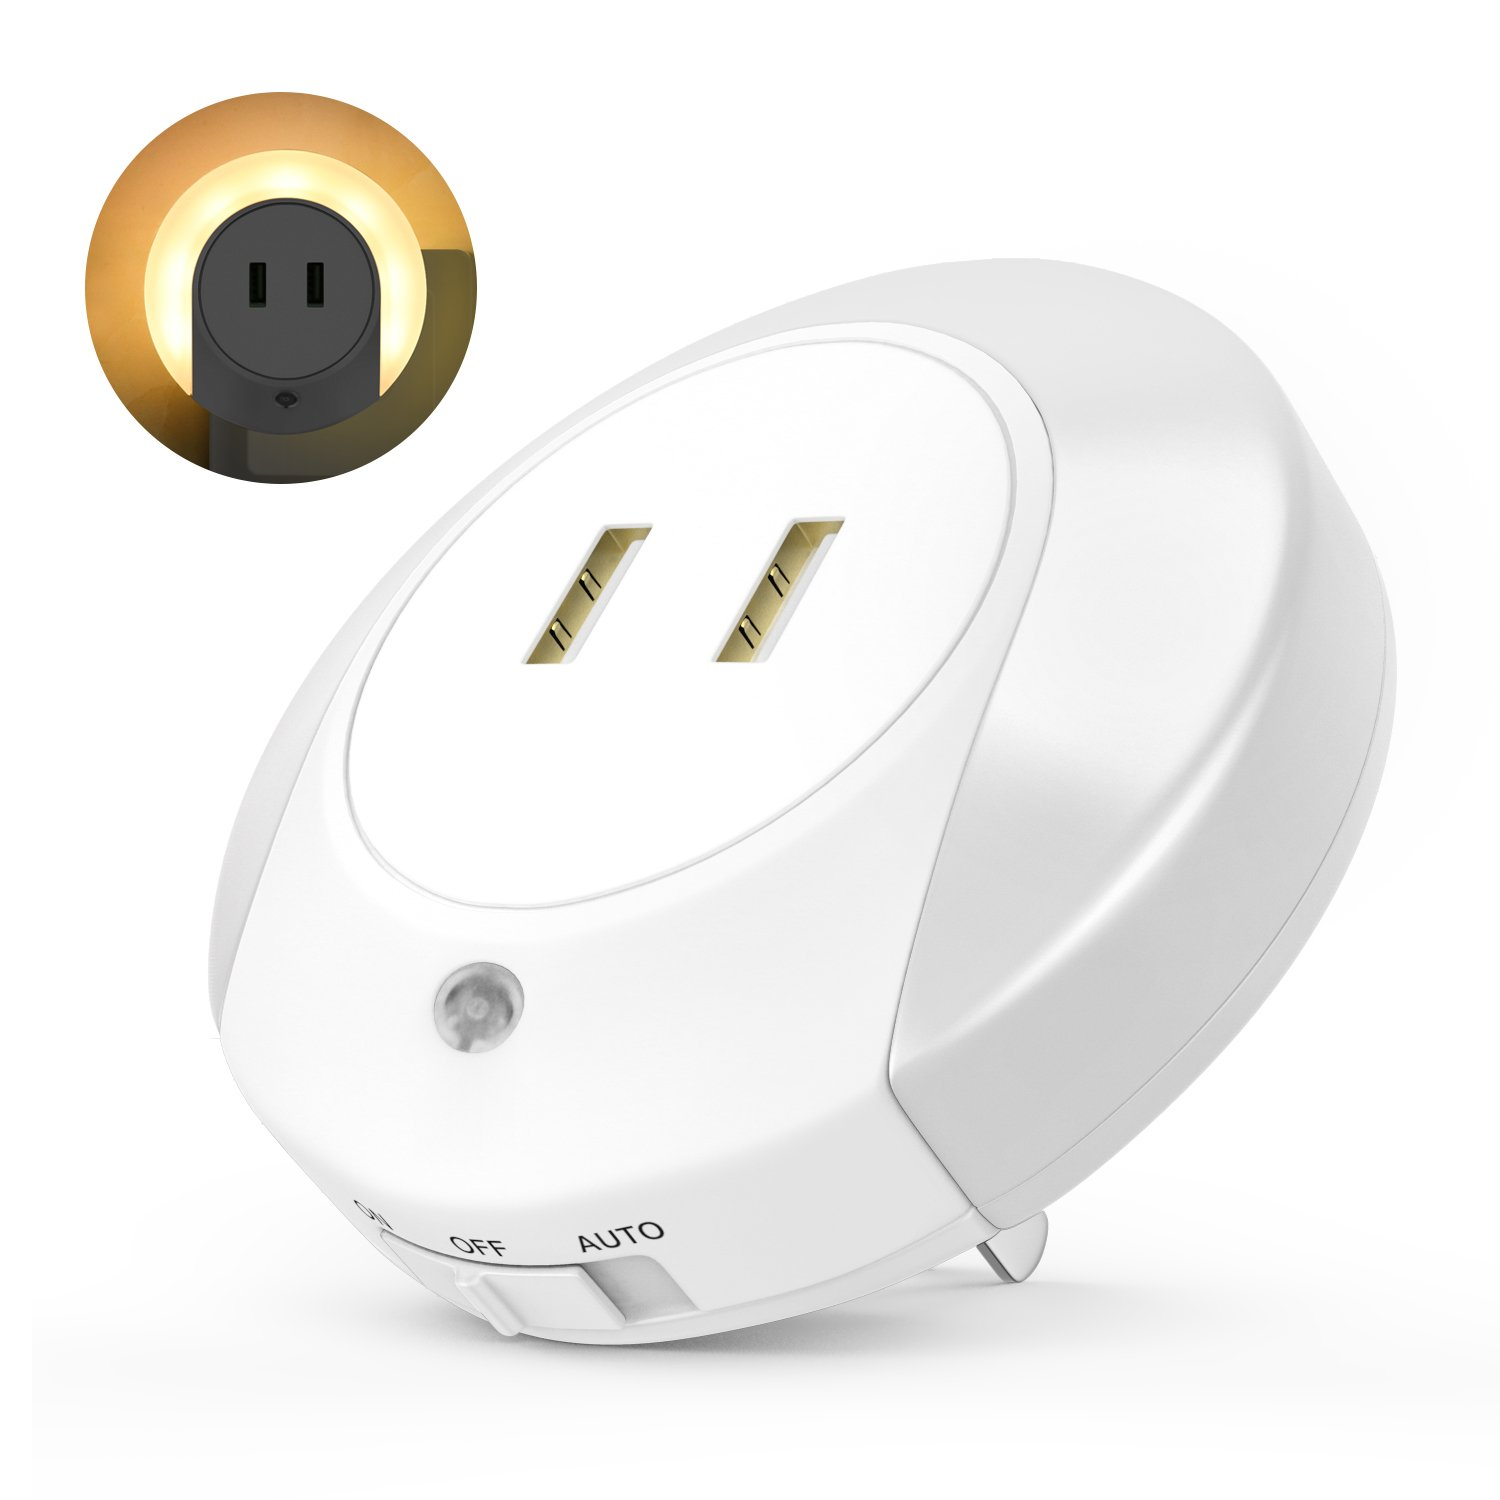 USB Charger Night Light, MoKo Smart LED Plug-in Nightlight Lamp with Light Sensor Control, Dual USB Wall Plate Phone Tablet Charger, Perfect for Bedroom, Studyroom, Corridor, Balcony, Kitchen - White